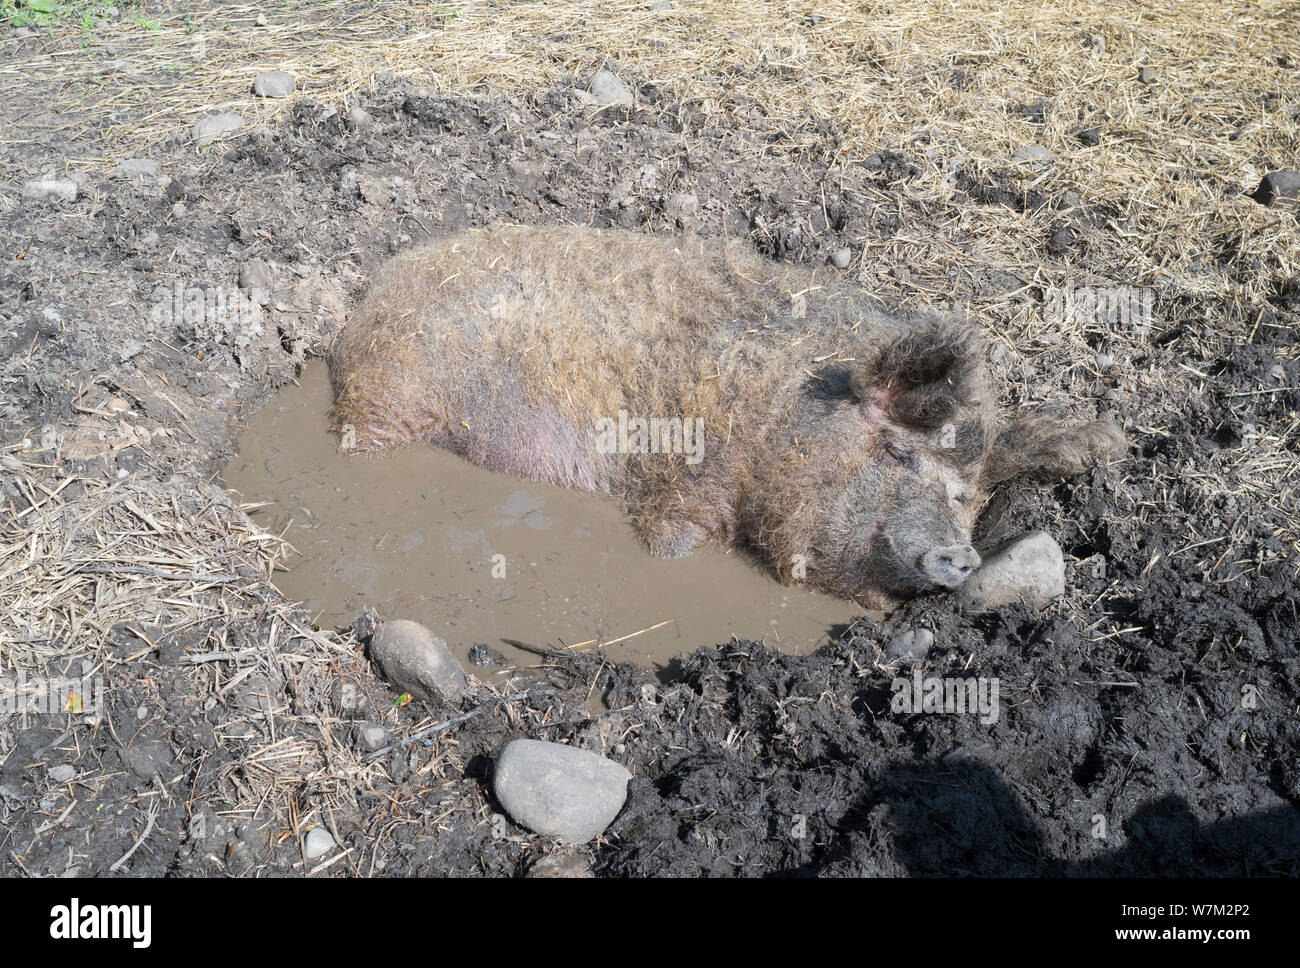 pig-wallowing-in-a-mud-bath-to-keep-cool